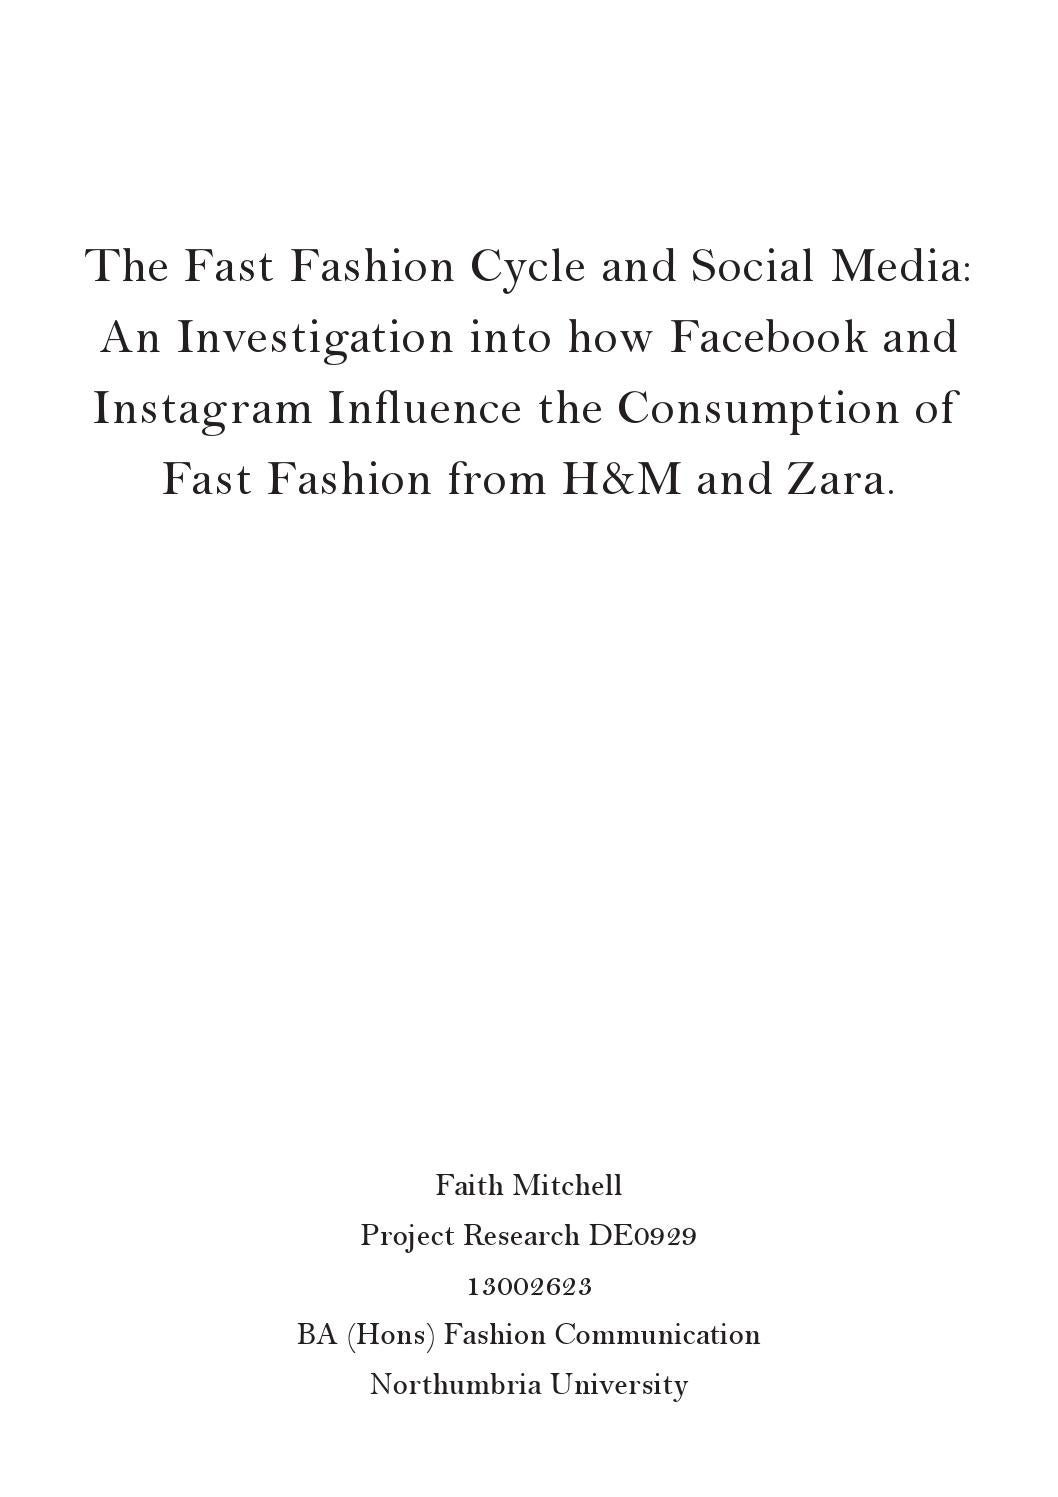 stella mccartney report by mary cox  fast fashion and social media